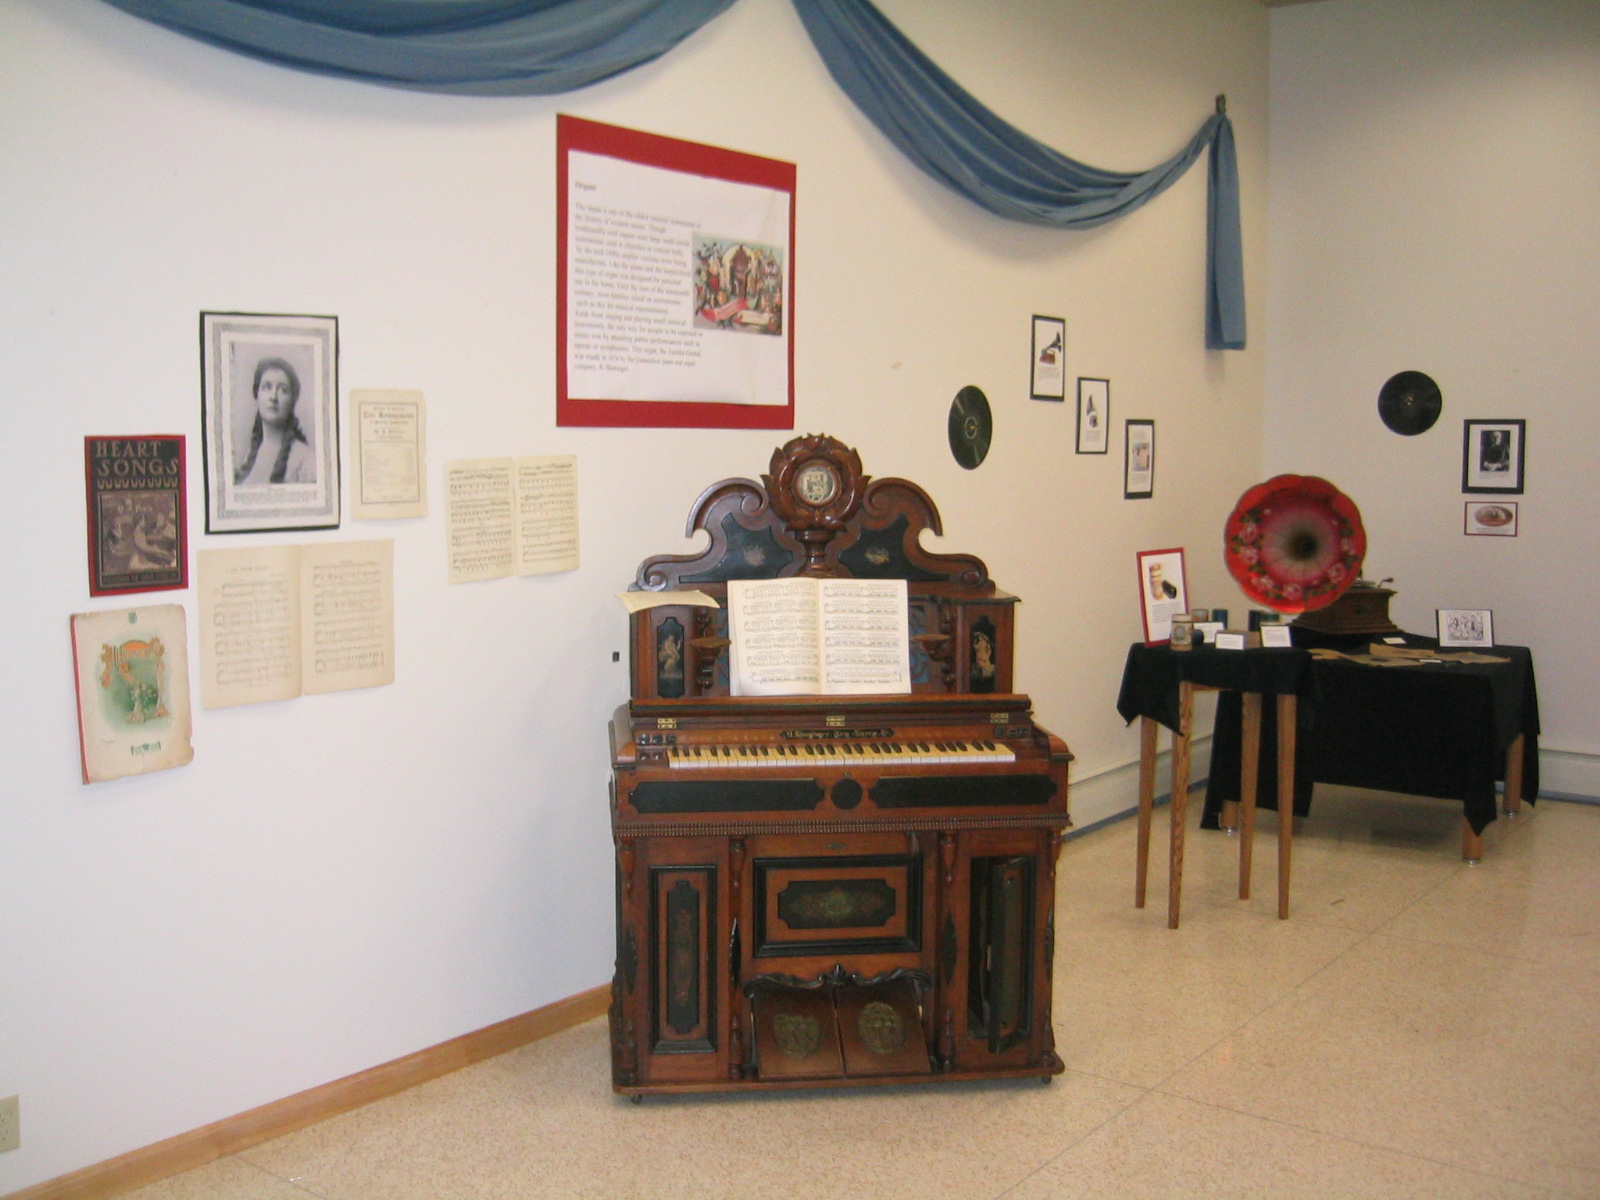 One of the first organs west of the Mississippi and an early, working Victrola.